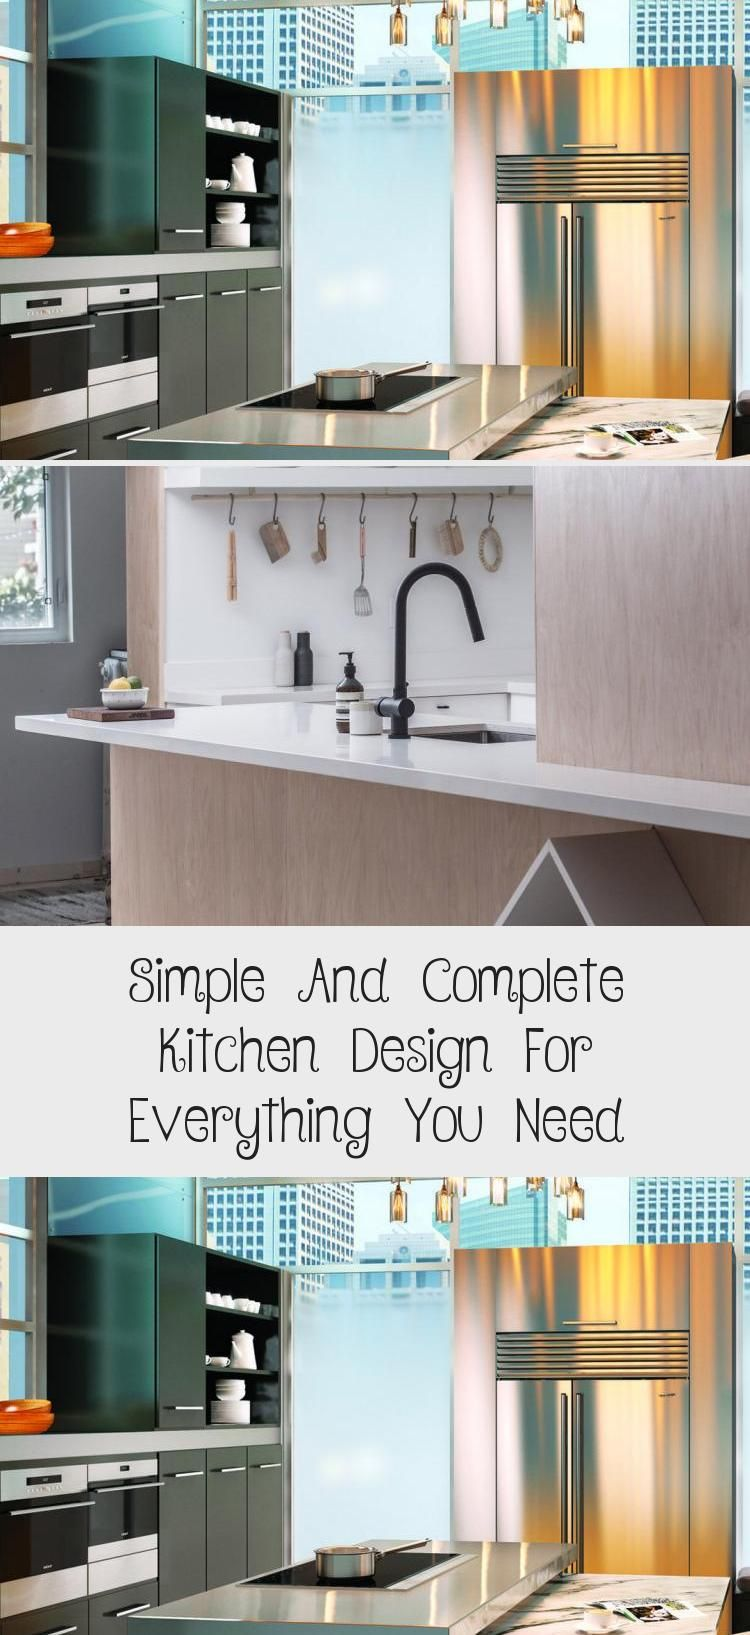 Simple And Complete Kitchen Design For Everything You Need In 2020